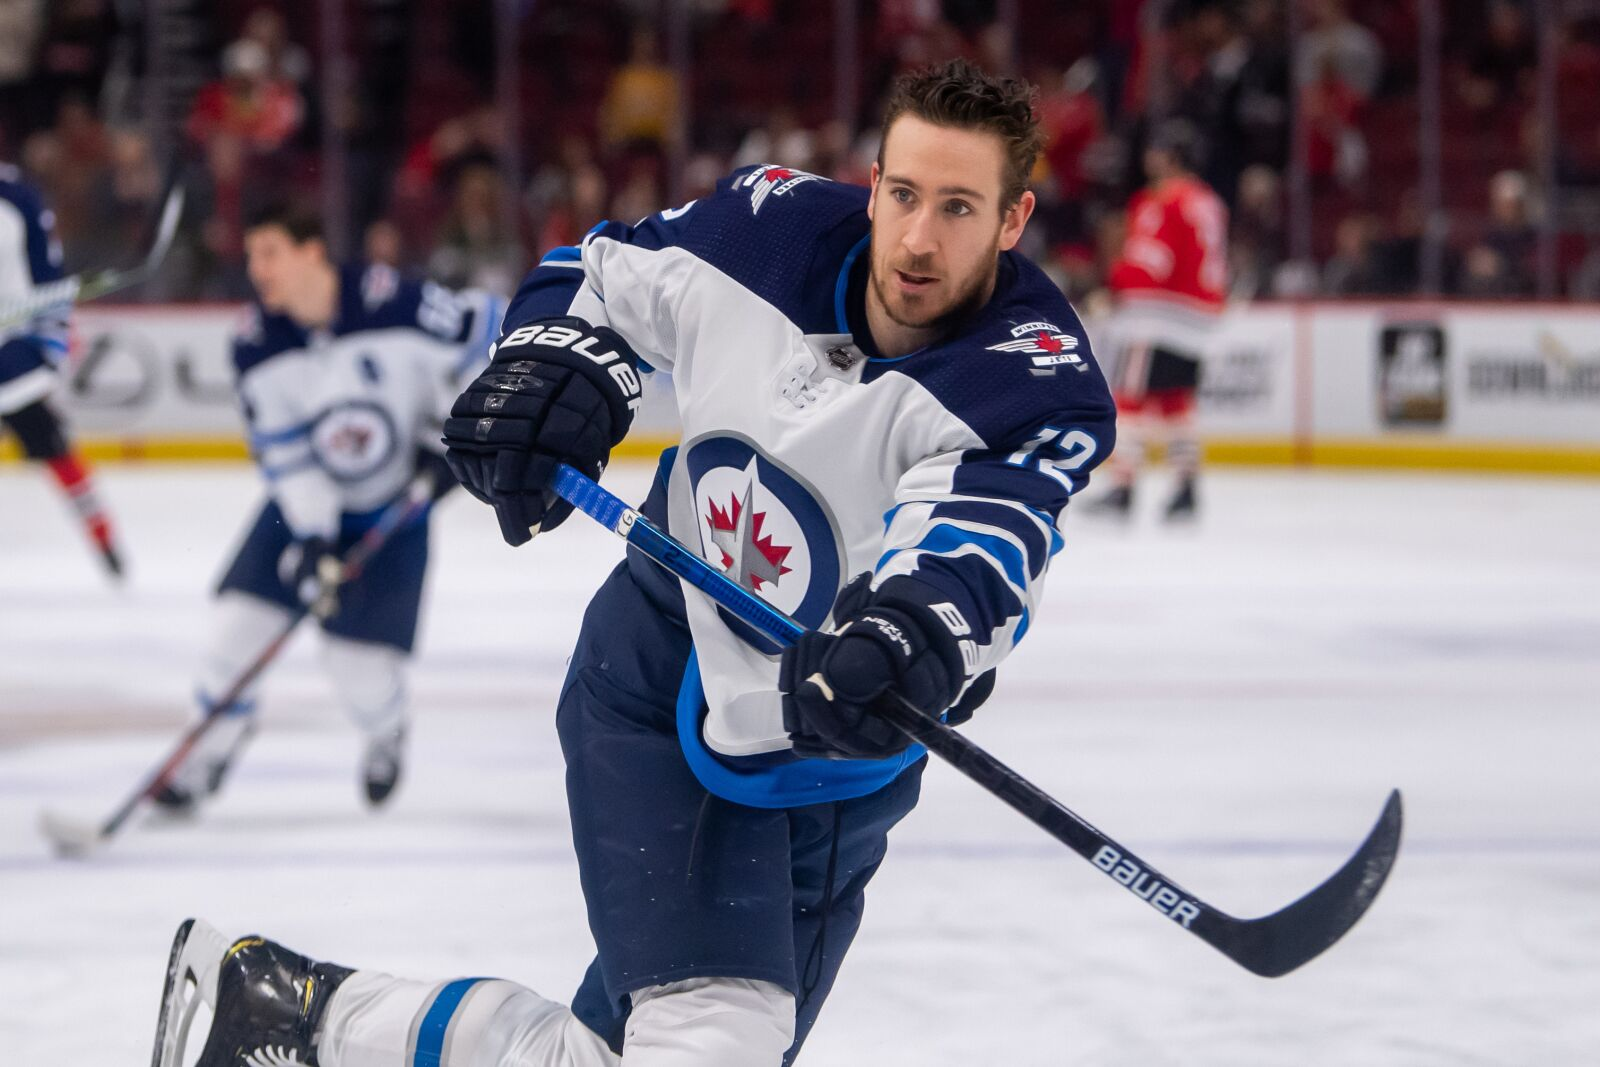 Philadelphia Flyers 2019-20 Player Expectations: Kevin Hayes